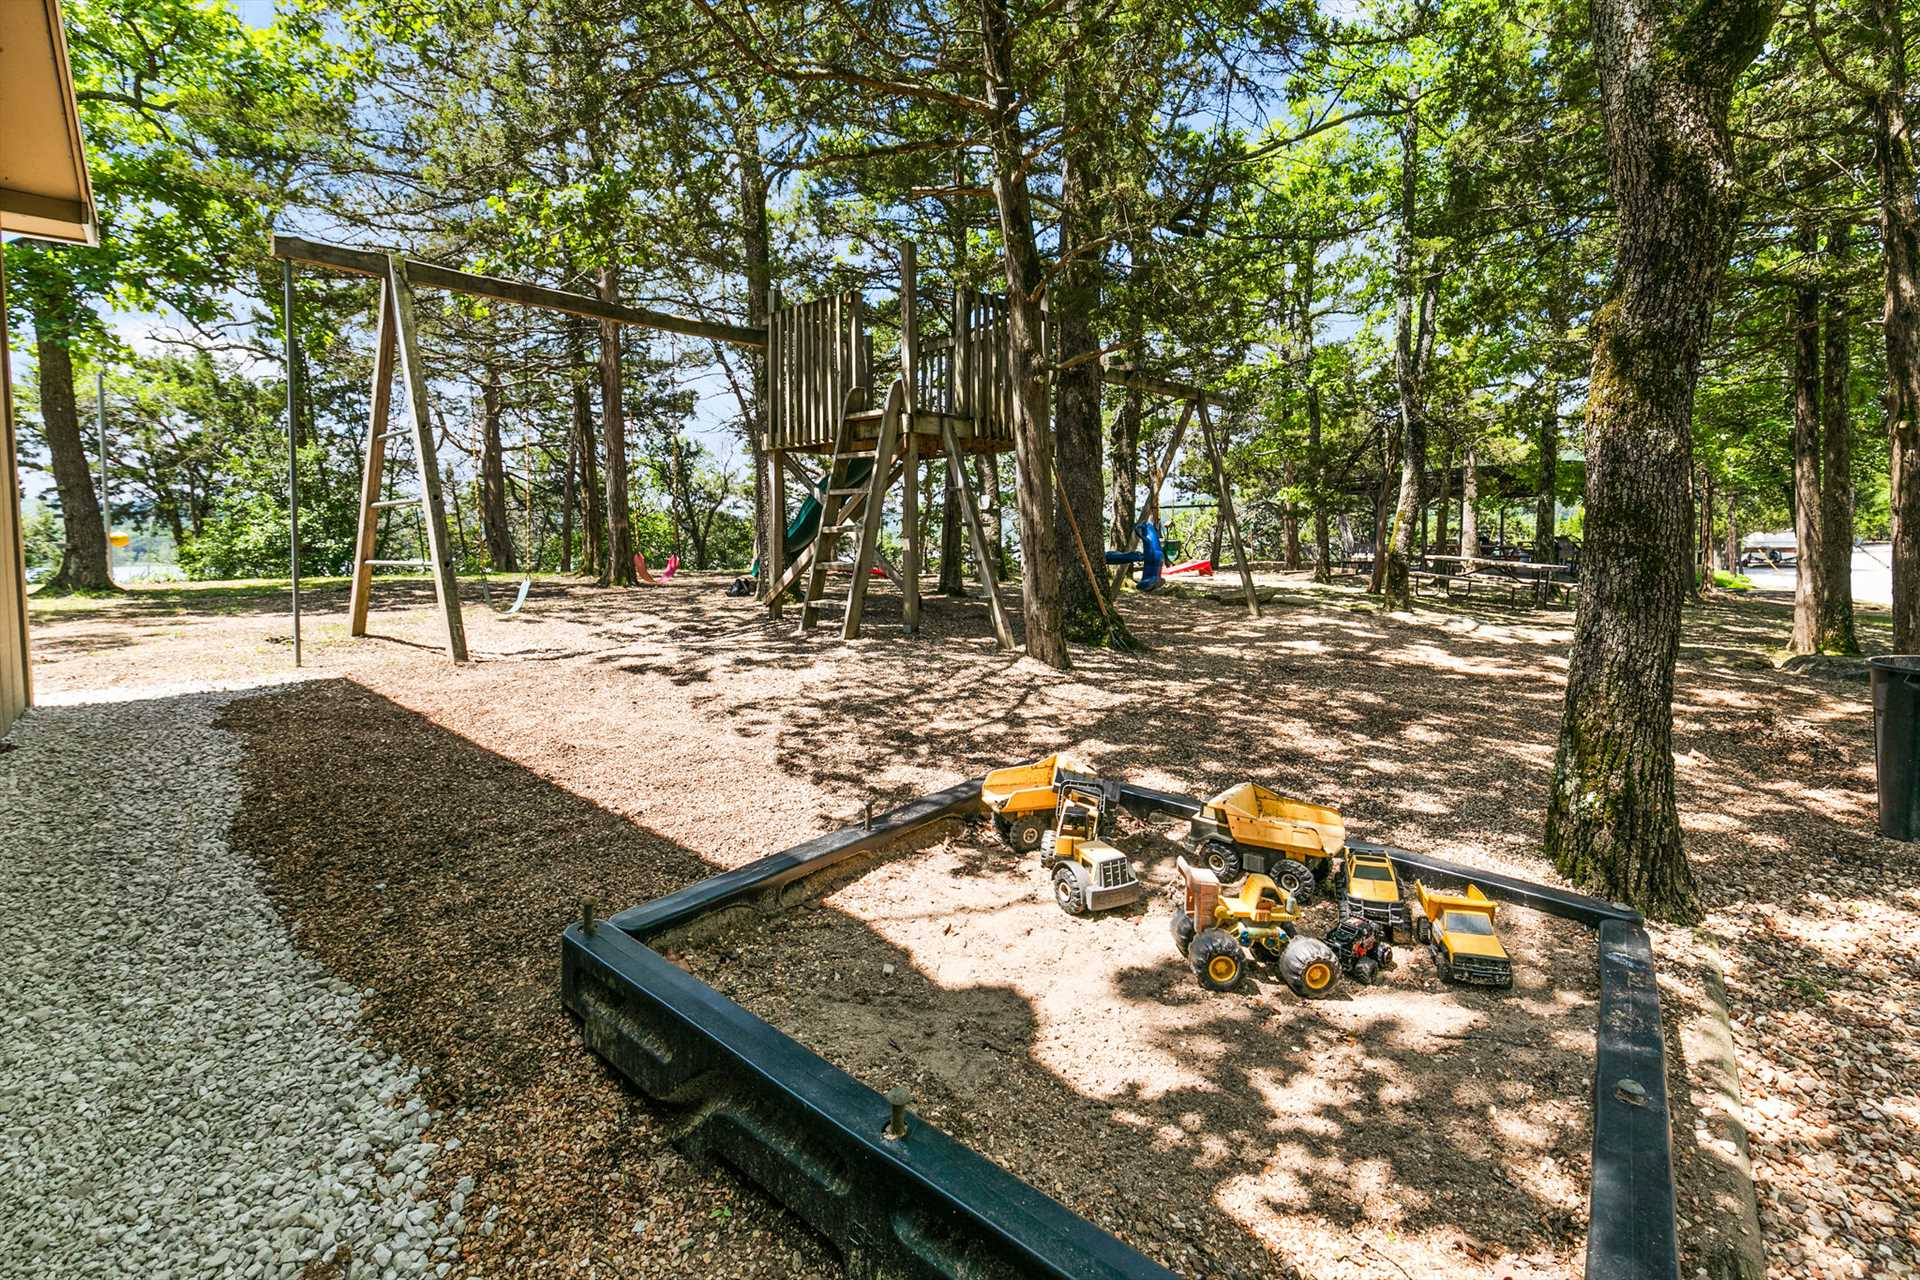 Younger guests love the playground.